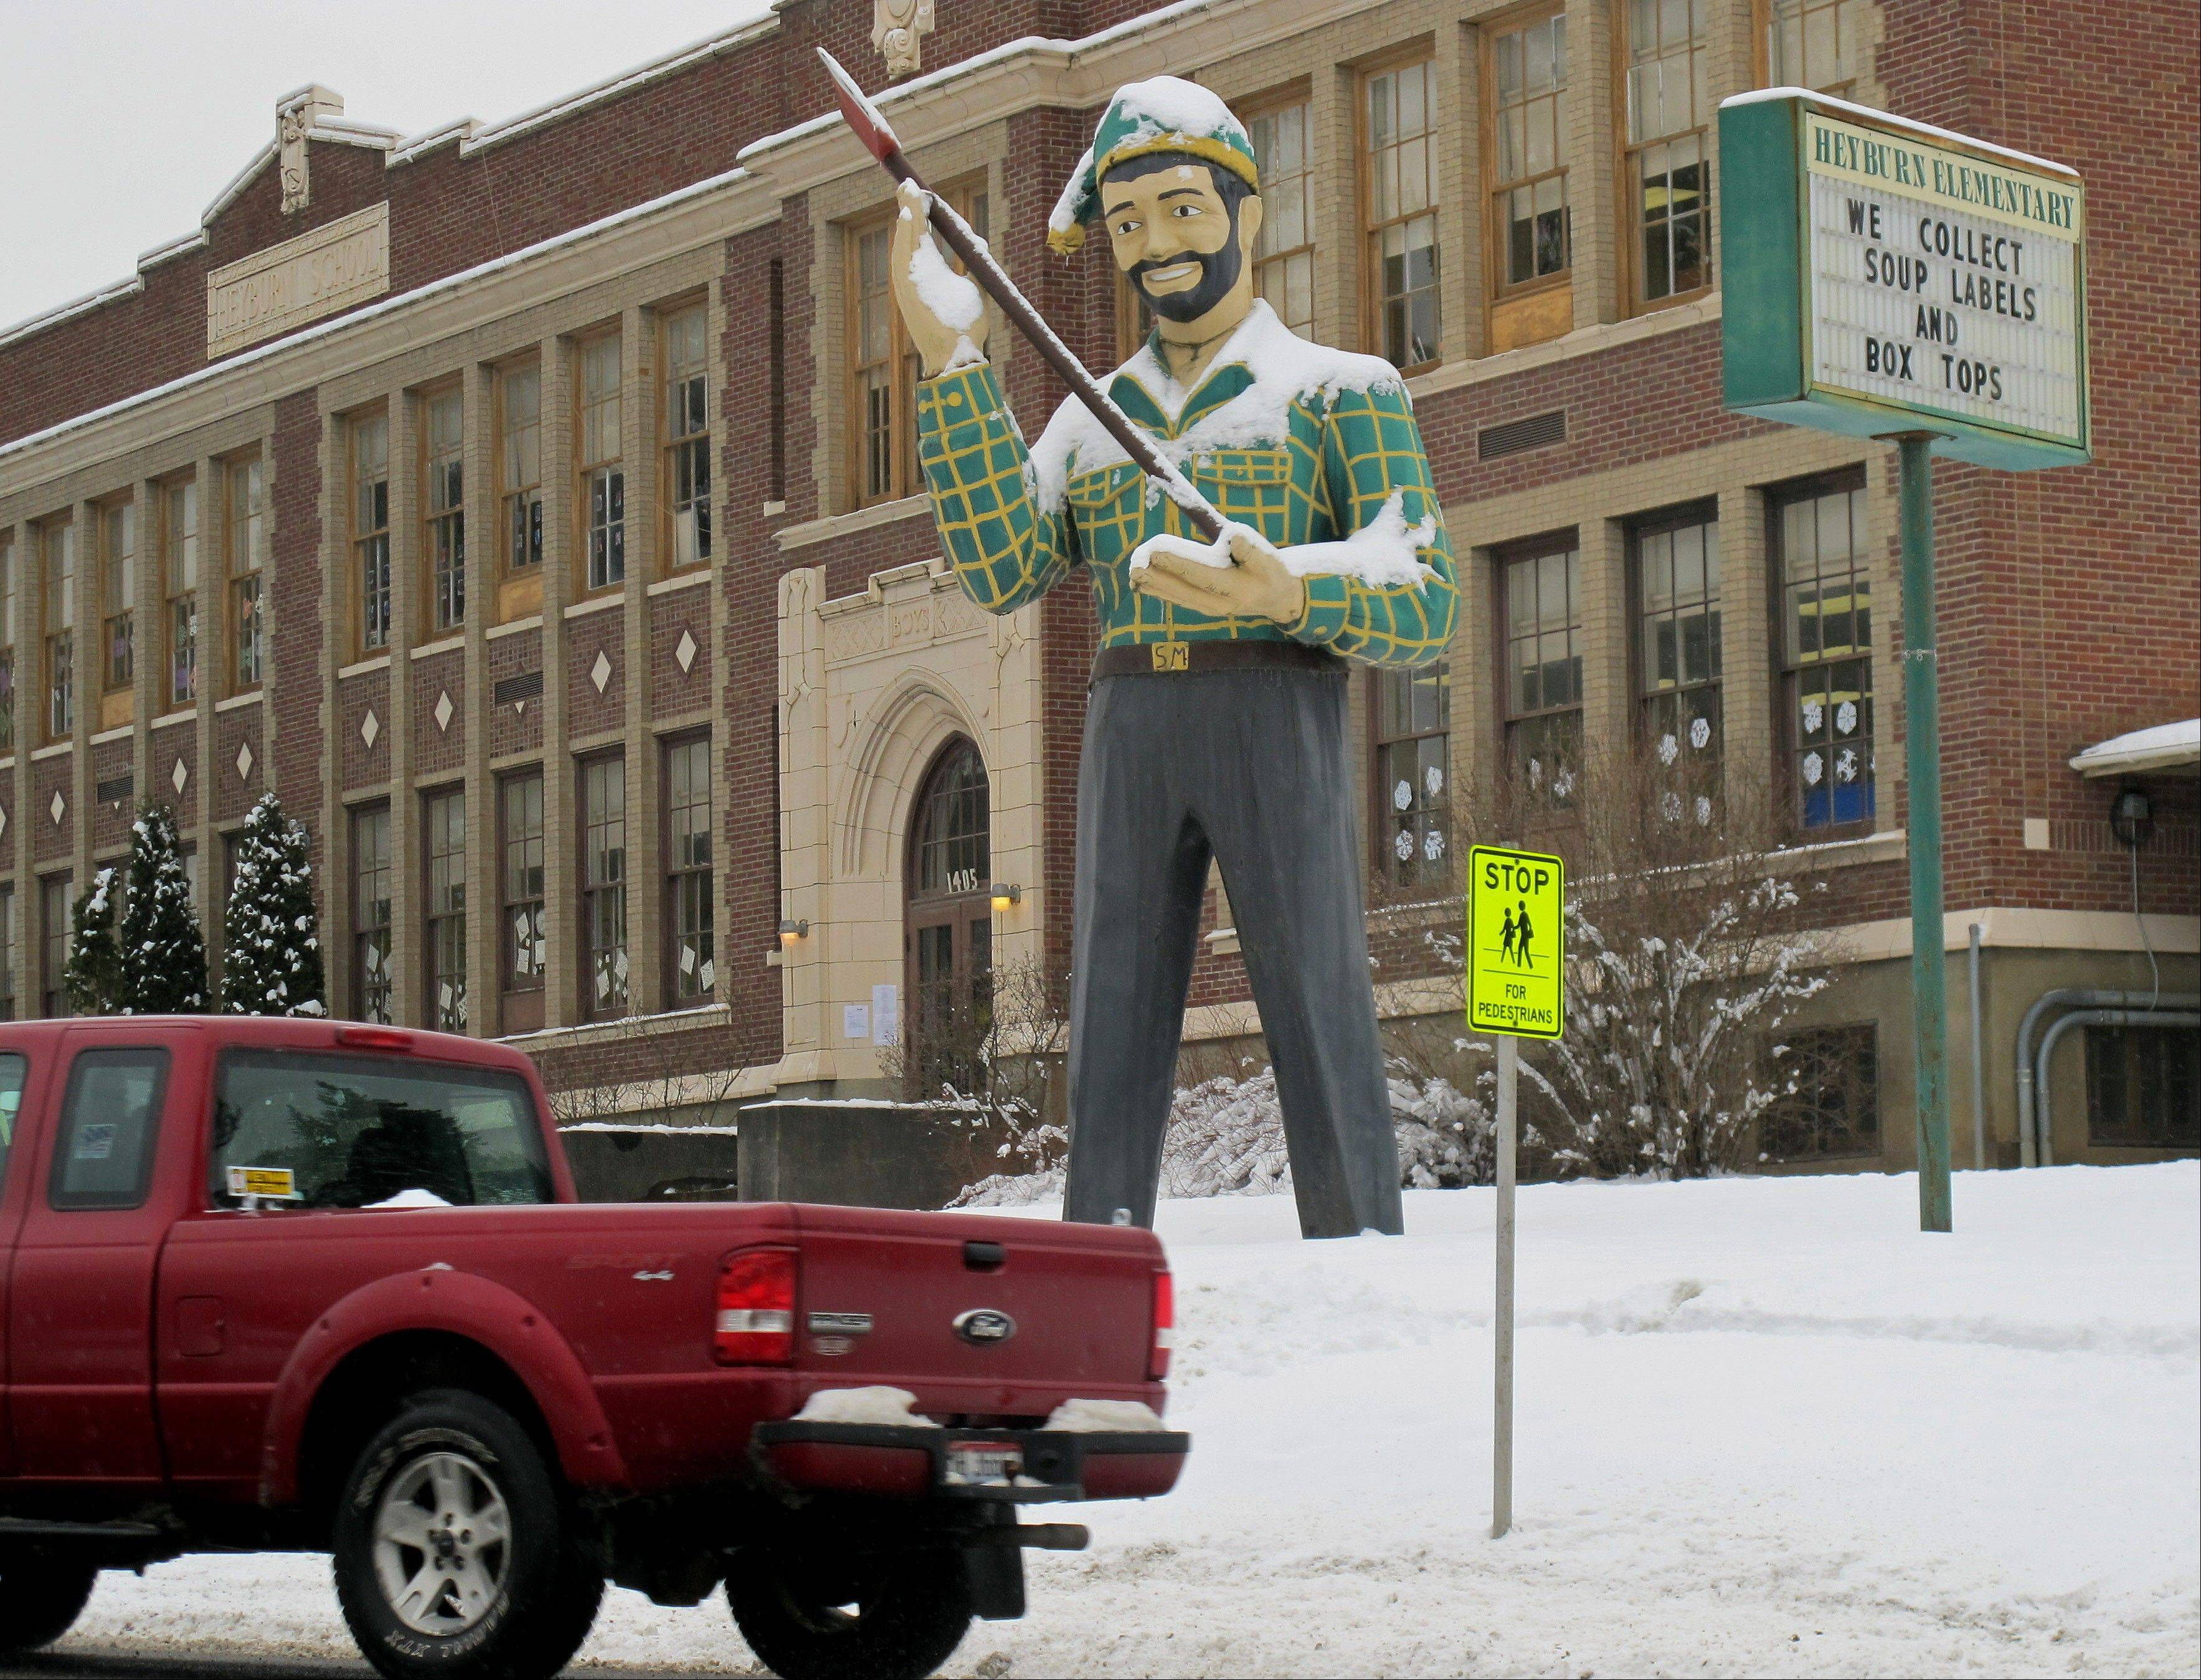 A statue of a logger stands outside an elementary school in St. Maries, Idaho, near where a survivalist group plans to build a compound. The proposal is called the Citadel and has created a buzz among folks in this remote logging town 70 miles southeast of Spokane, Wash.